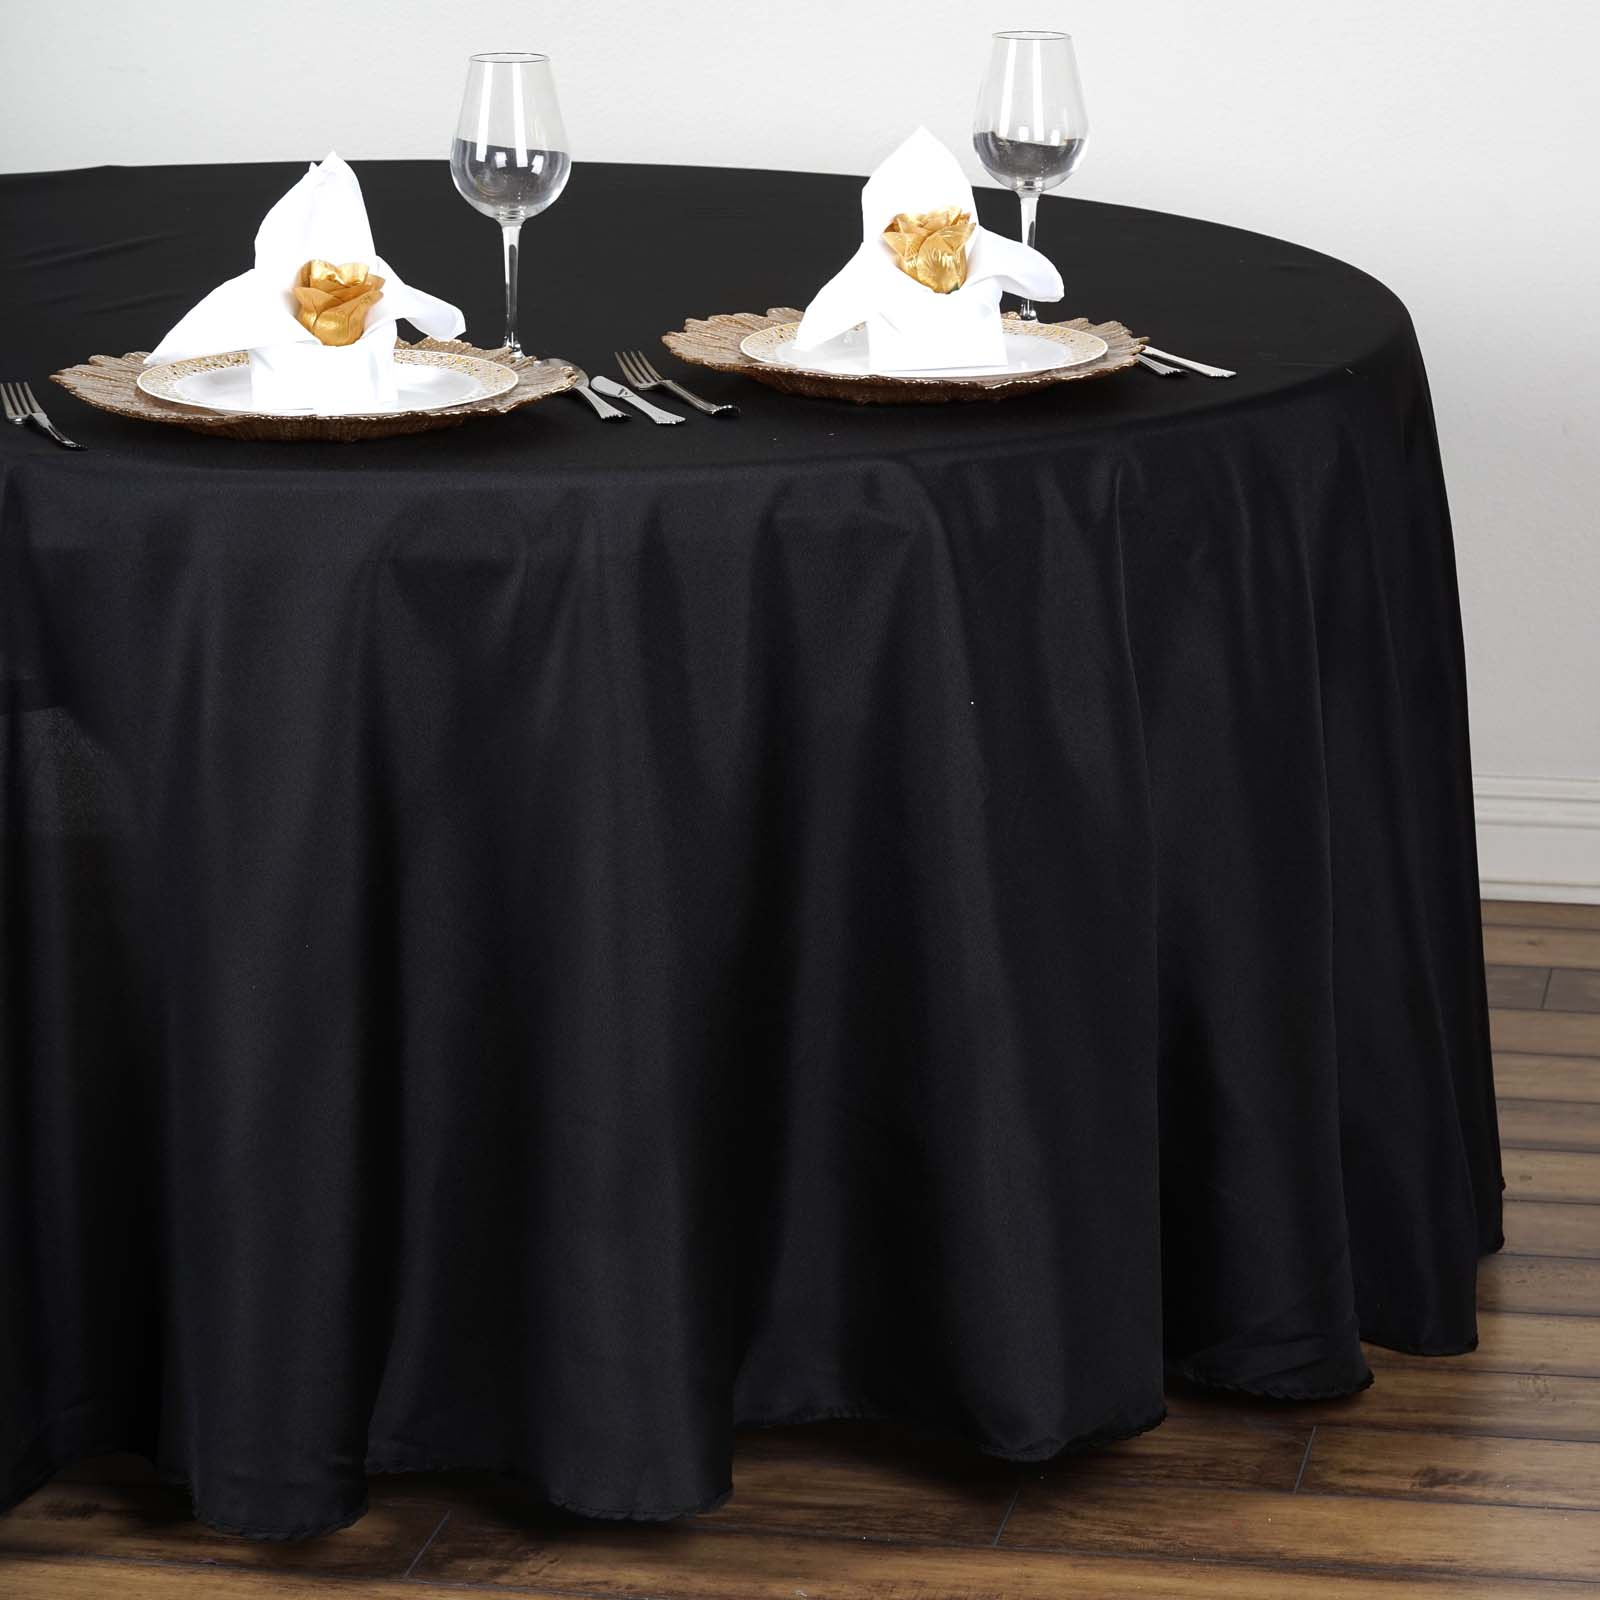 "BalsaCircle 108"" Round Polyester Tablecloth Wedding Table Linens"